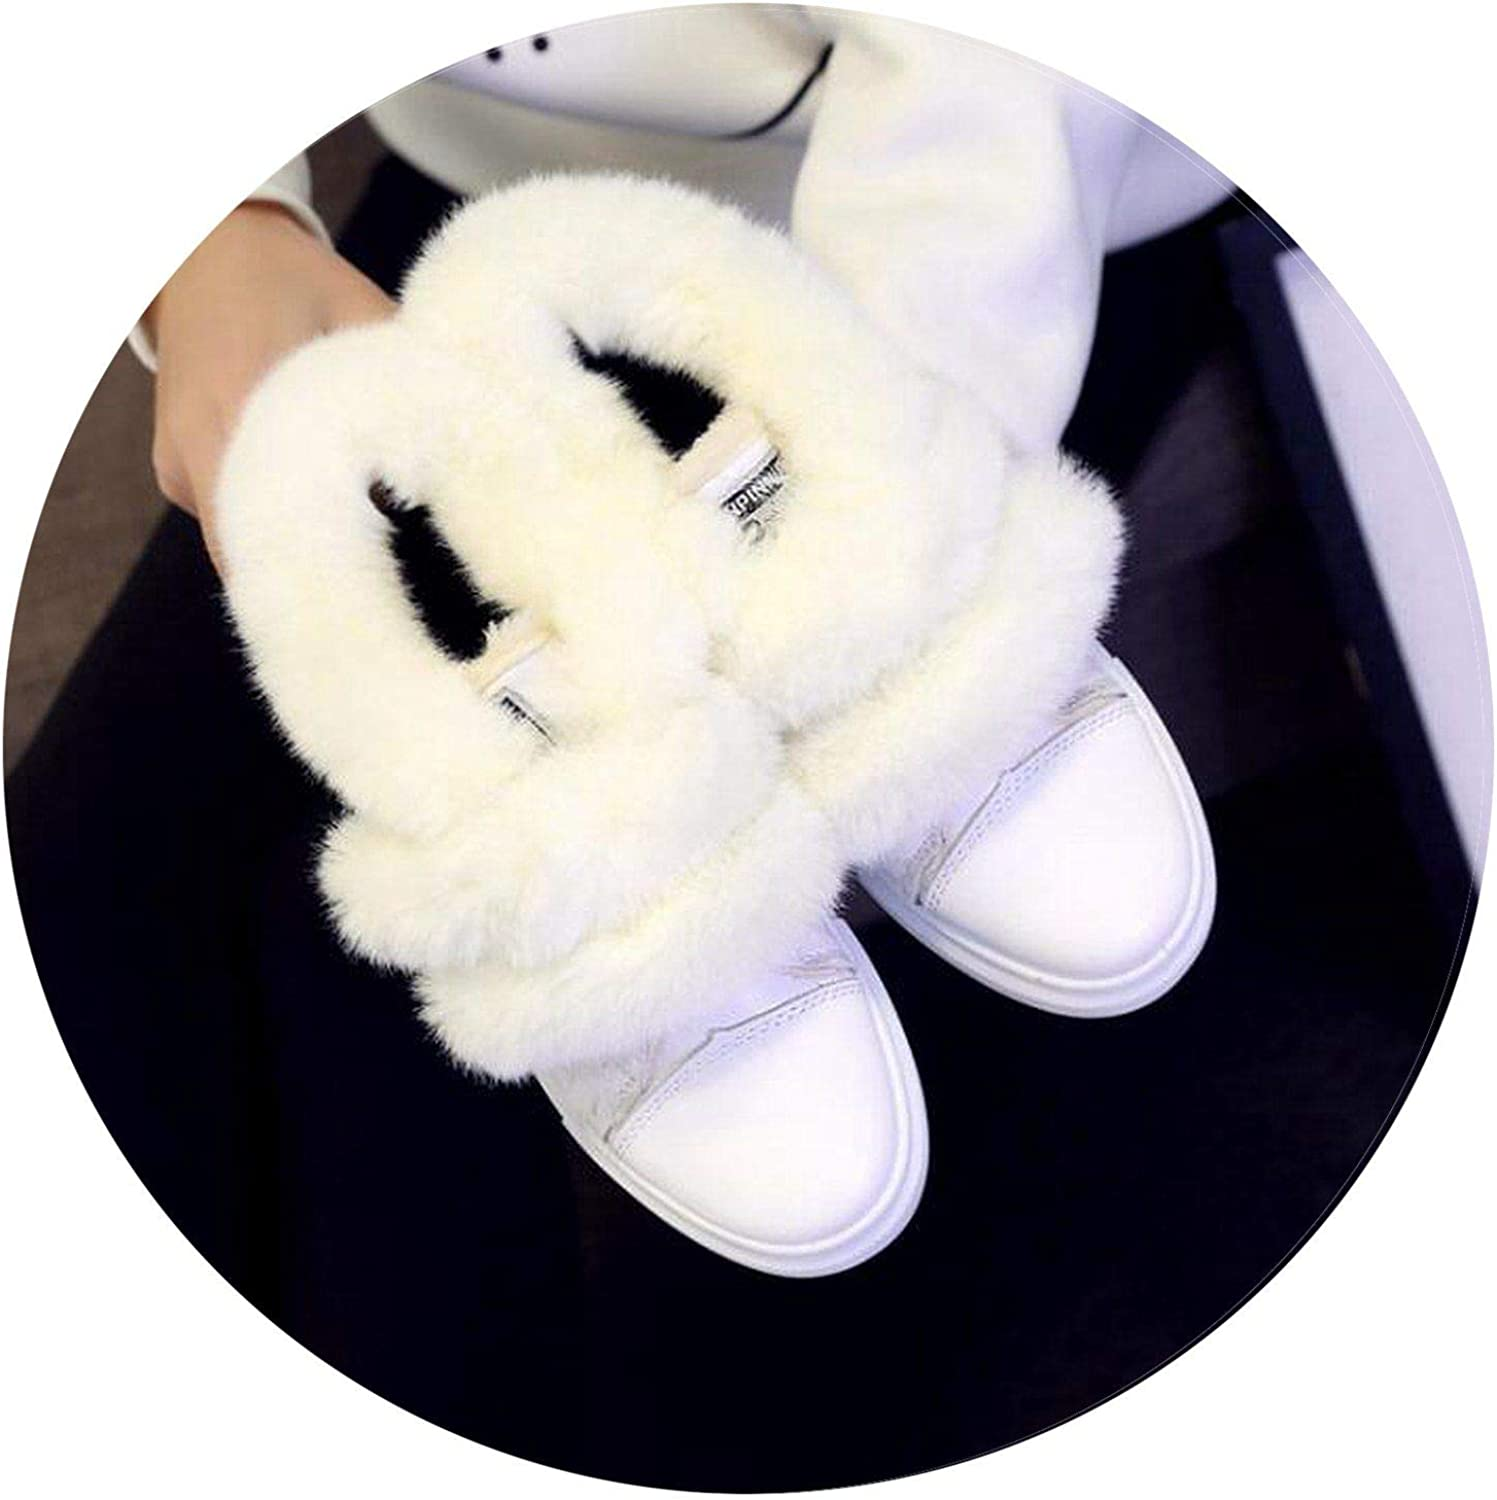 Summer-lavender Women Boots Winter Cotton shoes Woman Warm Snow Boots Fur Flat Ankle Boots Black White